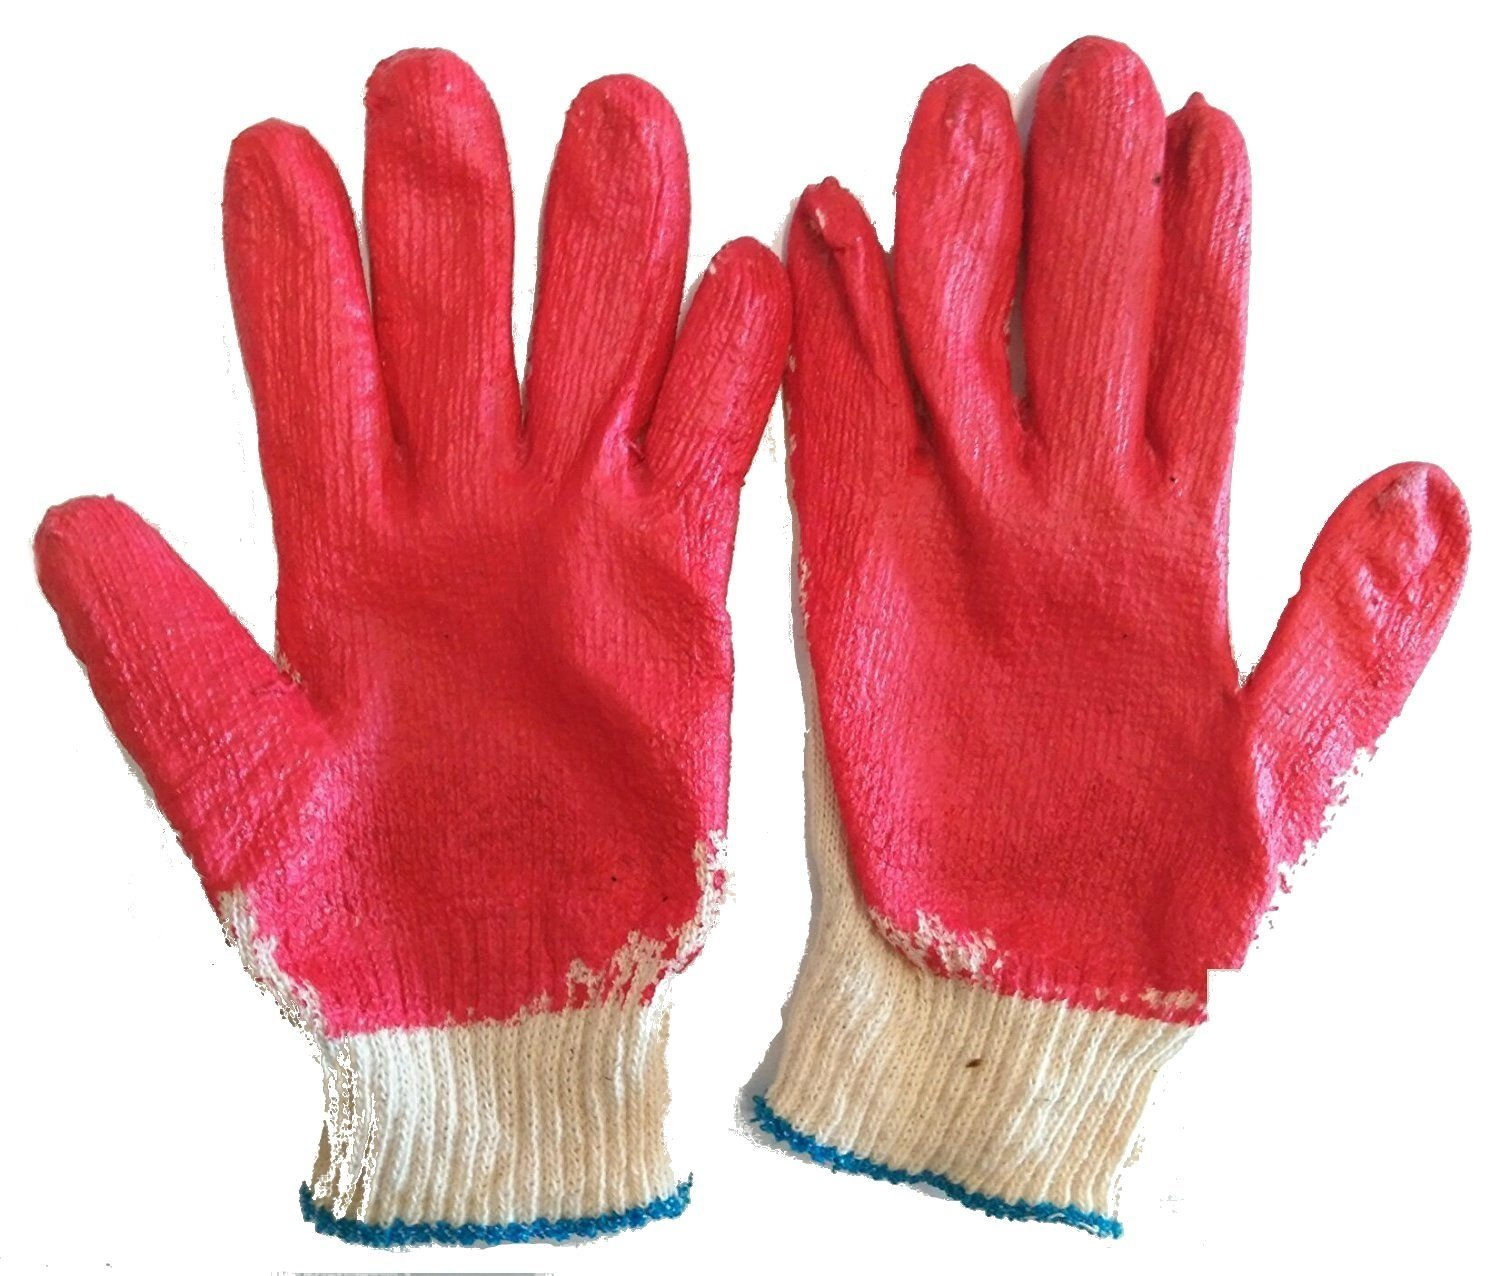 ChulSan 100 Pairs Red Latex Rubber Palm Coated Work Safety Gloves